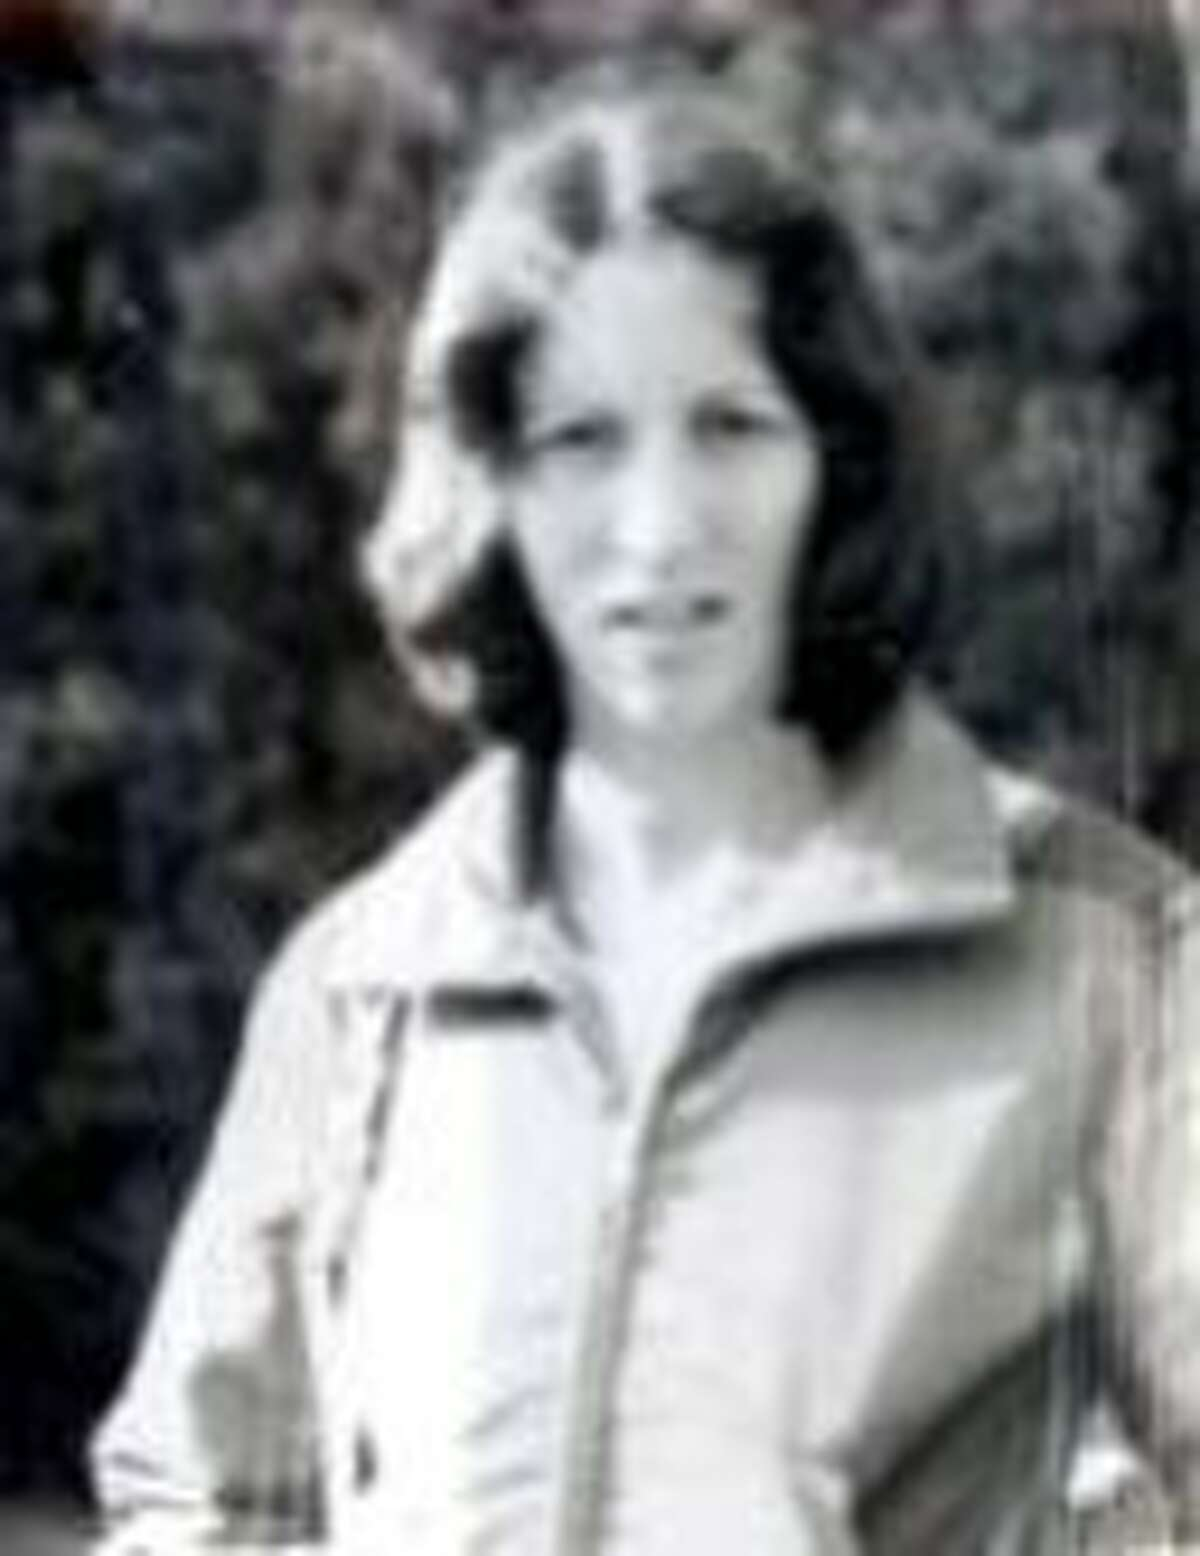 On March 15, 1976, 26 year old Carol Lee Booth was seen walking from the bus stop on El Camino Real at Arroyo Street in South San Francisco towards her home. She was known to use a common shortcut across an open area between Kaiser Hospital and Mission Road near the former El Camino Driving Range. Her body was located months later hidden in the brush in the same area. This is currently being investigated by the South San Francisco Police Department.